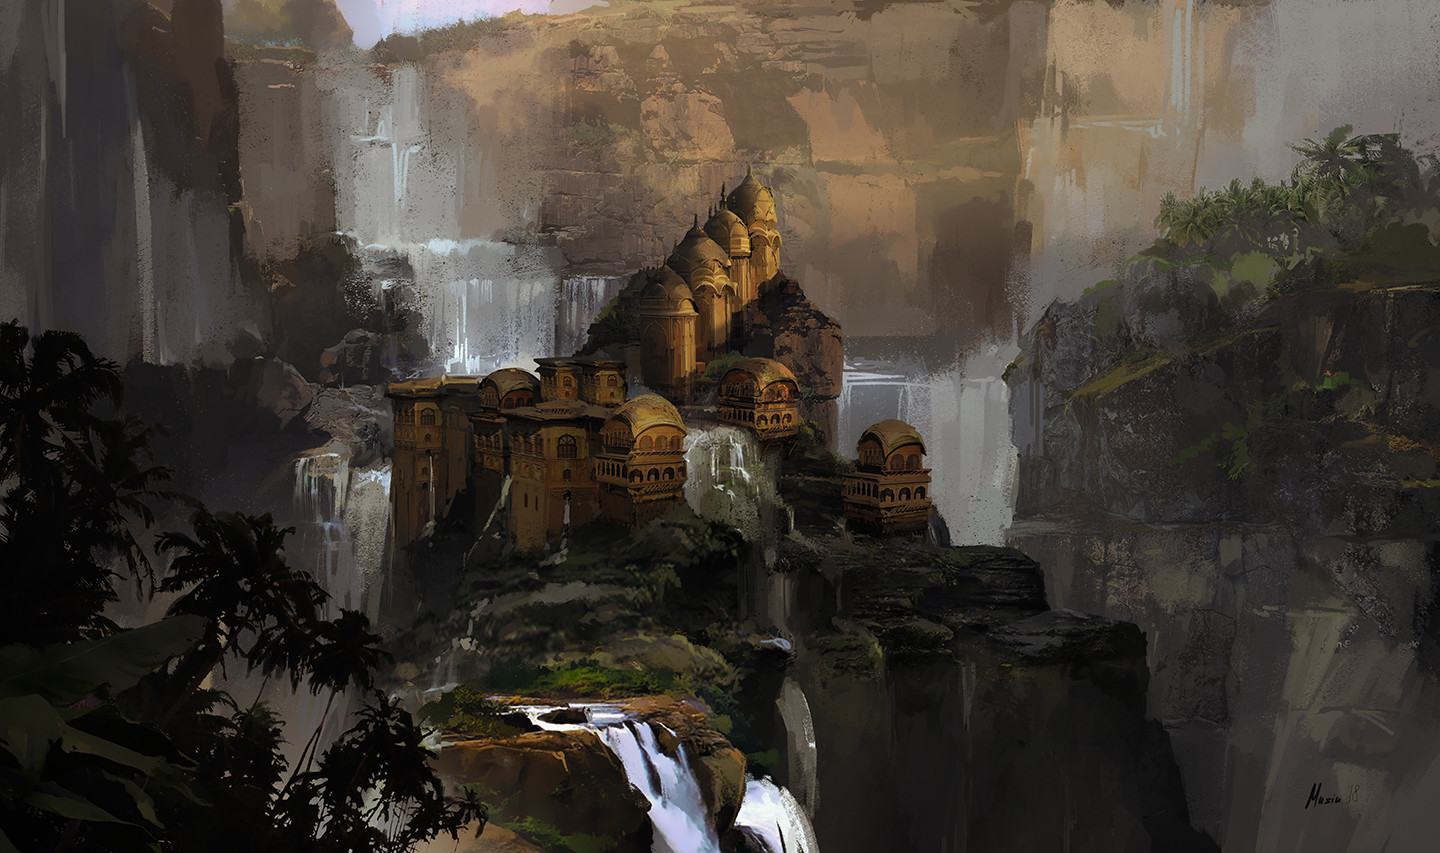 Sergey musin environment sketches16